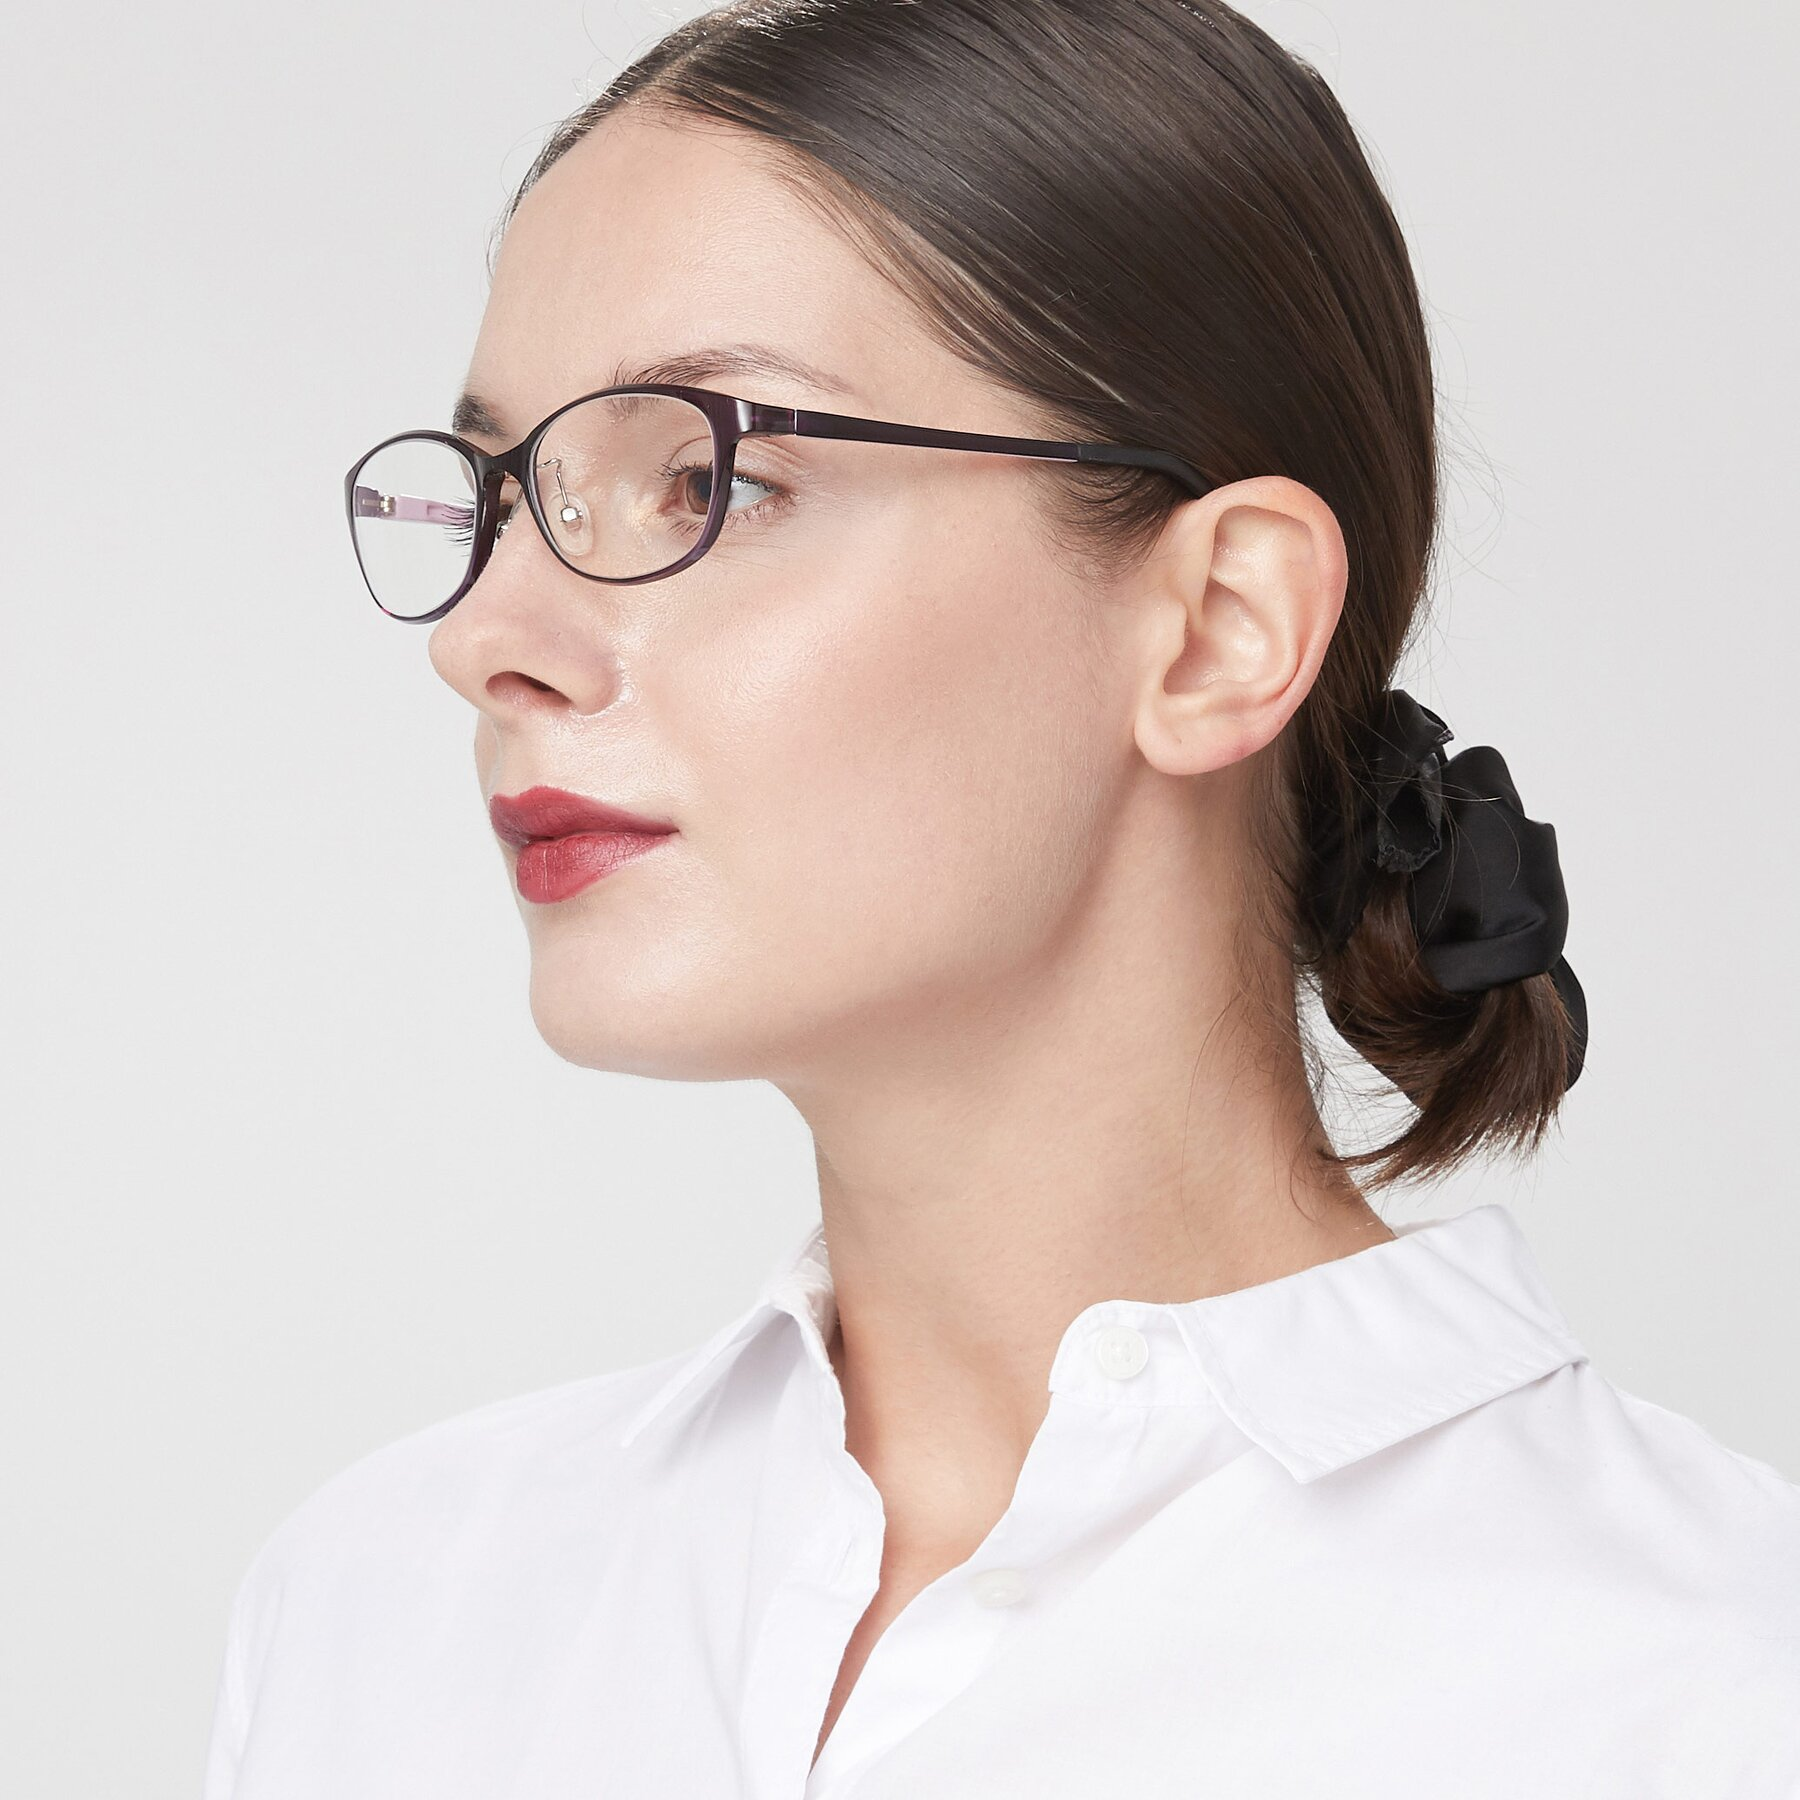 Women's lifestyle photography of S7040 in Brown-Pink with Clear Eyeglass Lenses